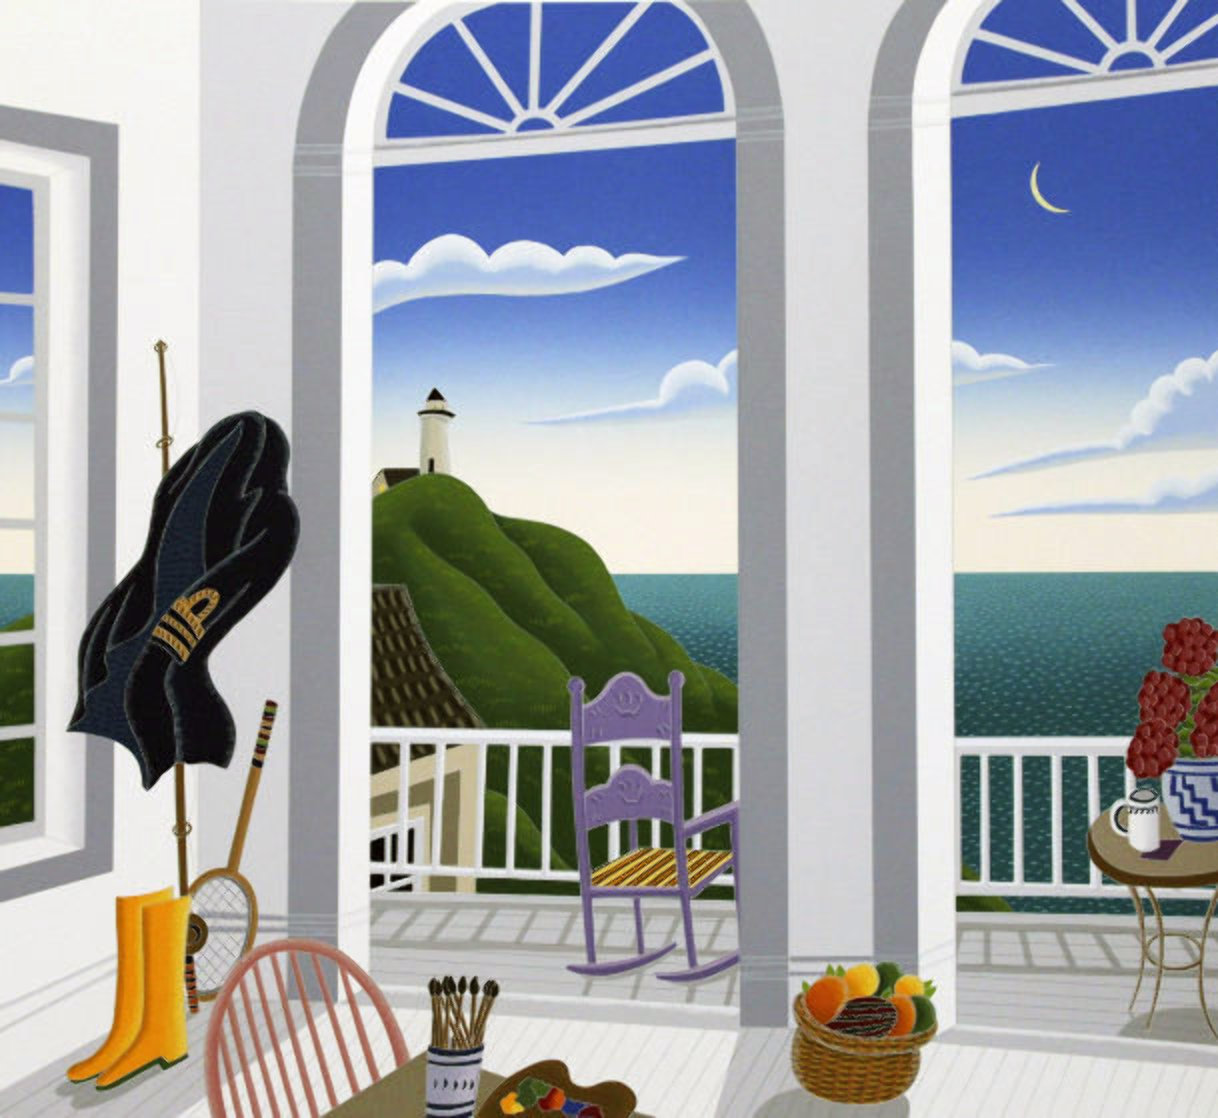 Nantucket Porch With Captain's Jacket AP 1991 Limited Edition Print by Thomas Frederick McKnight